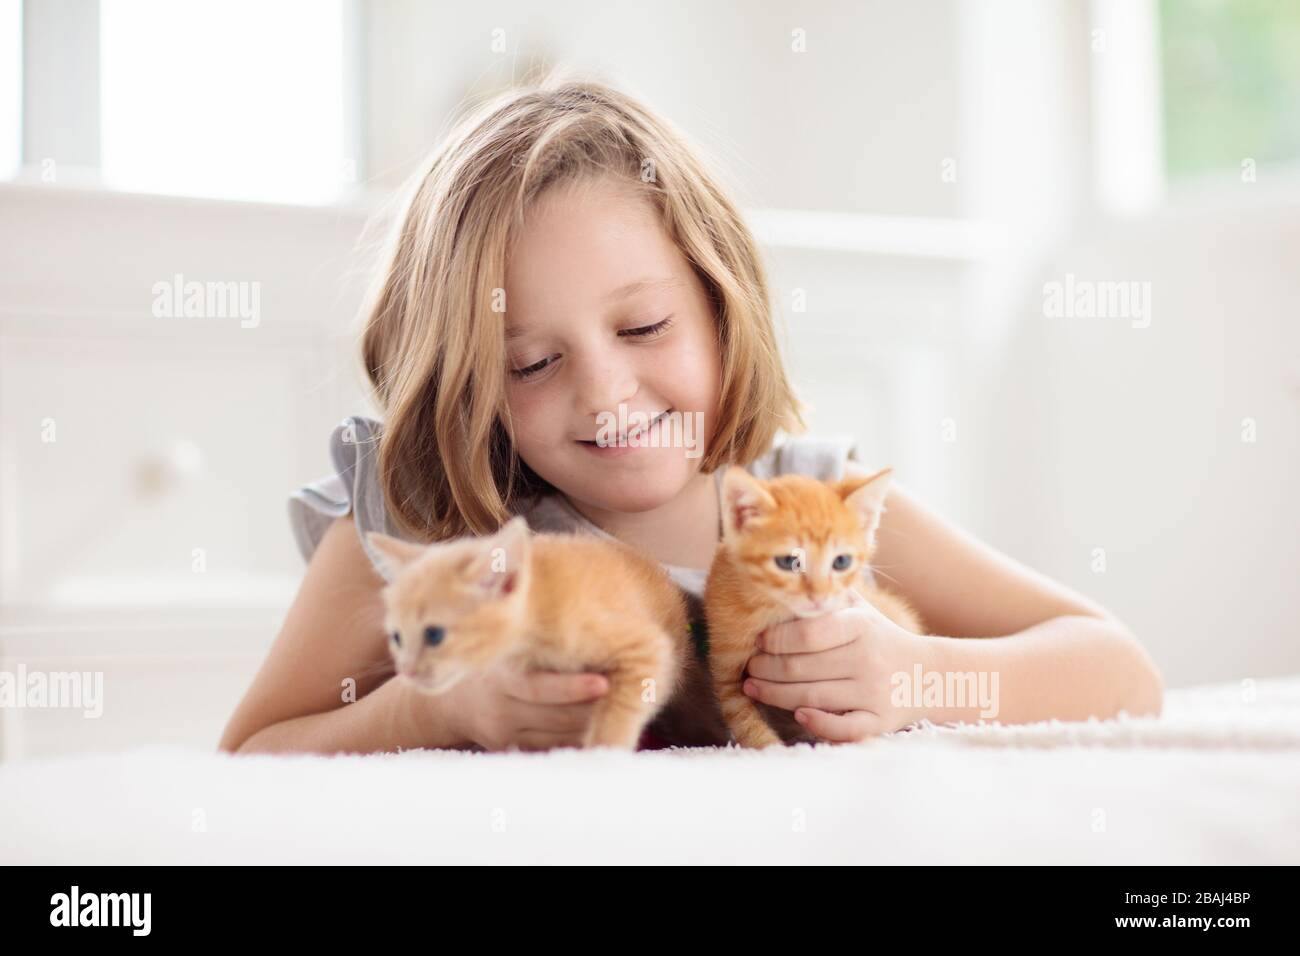 Child Holding Baby Cat Kids And Pets Little Girl Hugging Cute Little Kitten At Home Domestic Animal In Family With Kids Children With Pet Animals Stock Photo Alamy